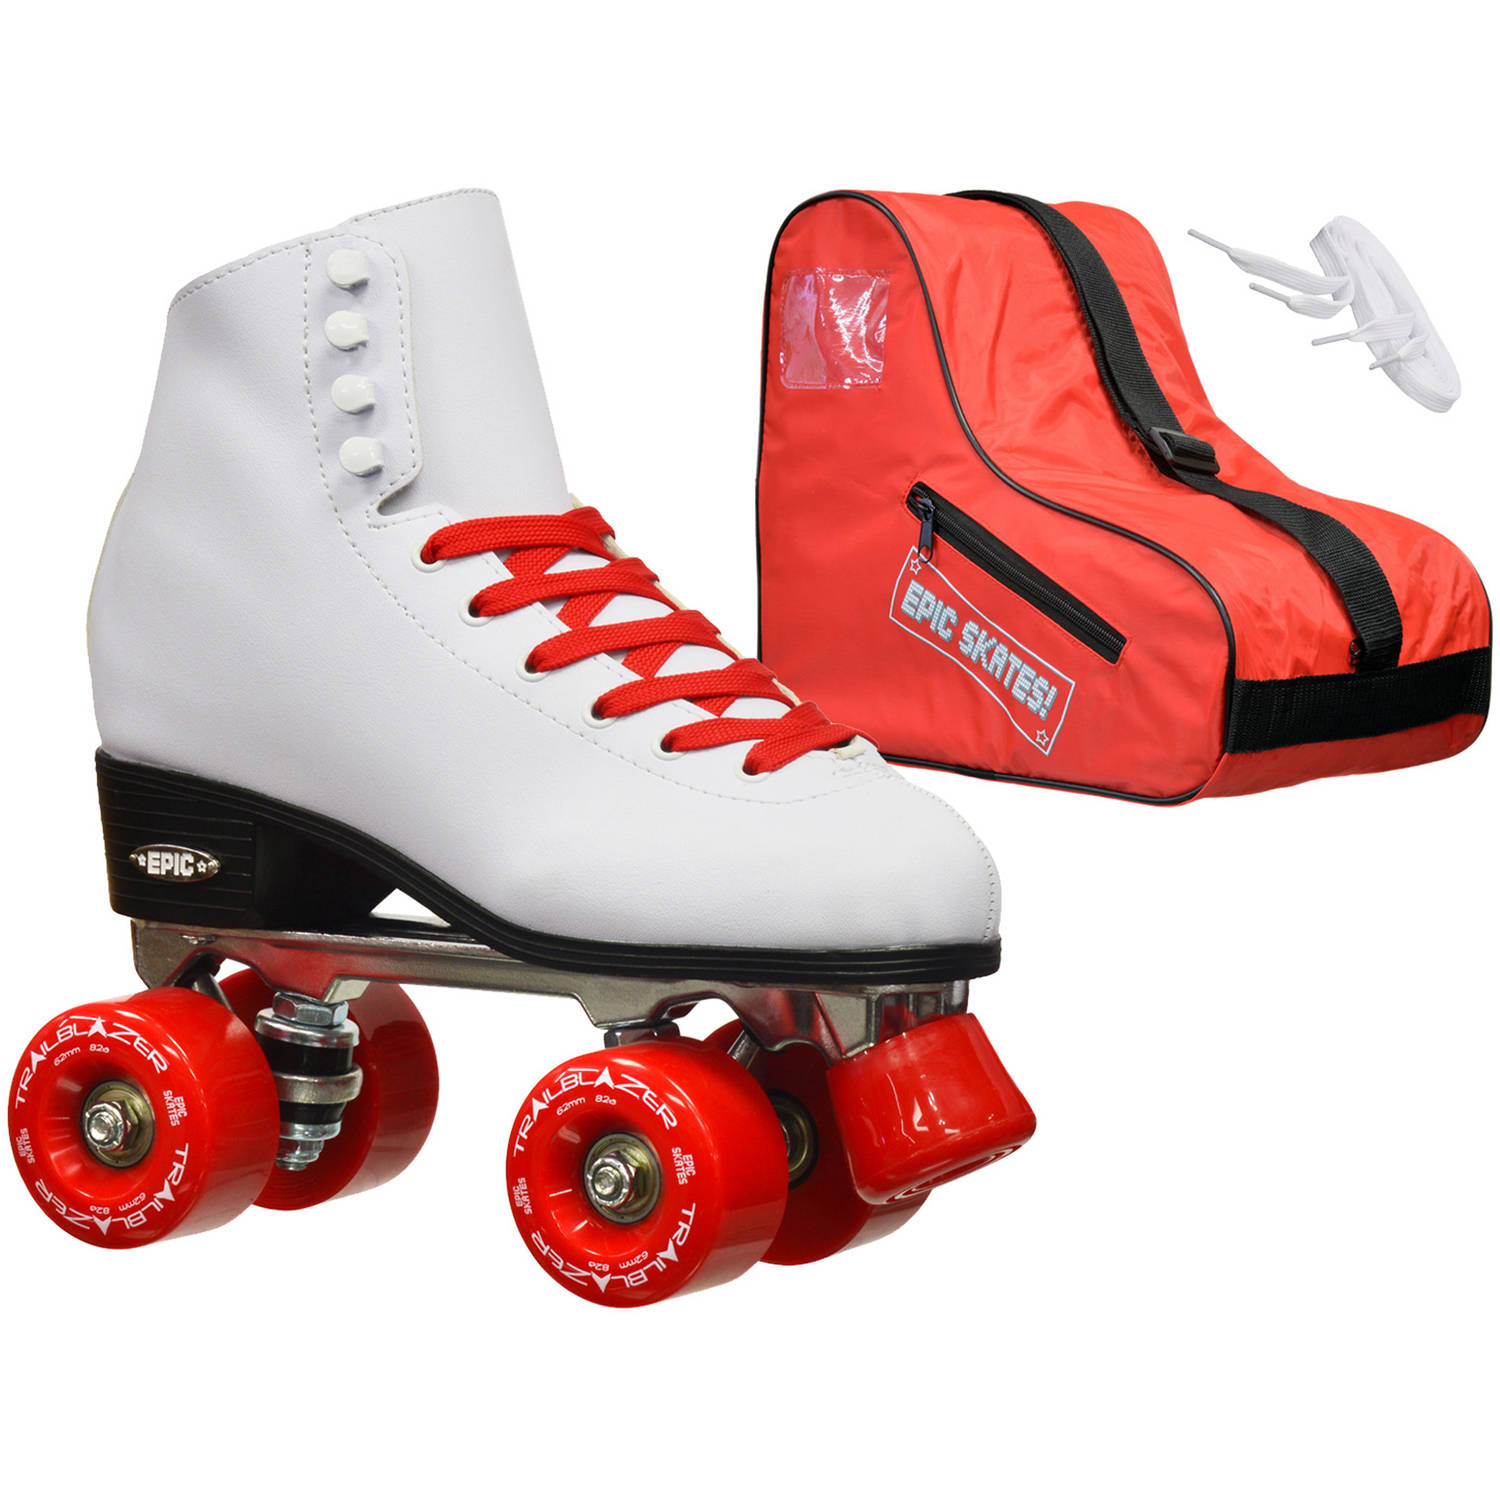 Epic Classic White/Red Quad Roller Skates Package